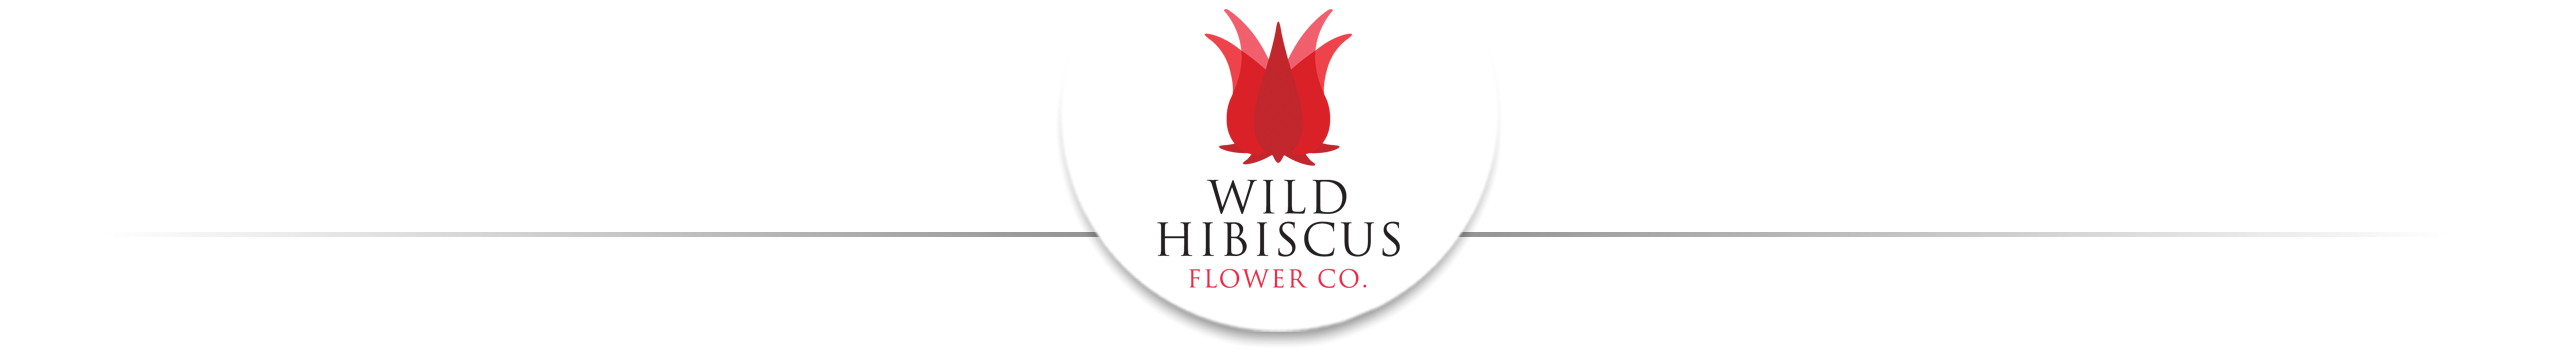 Flowers In Syrup Wild Hibiscus Flower Company Pty Ltd Kurrajong